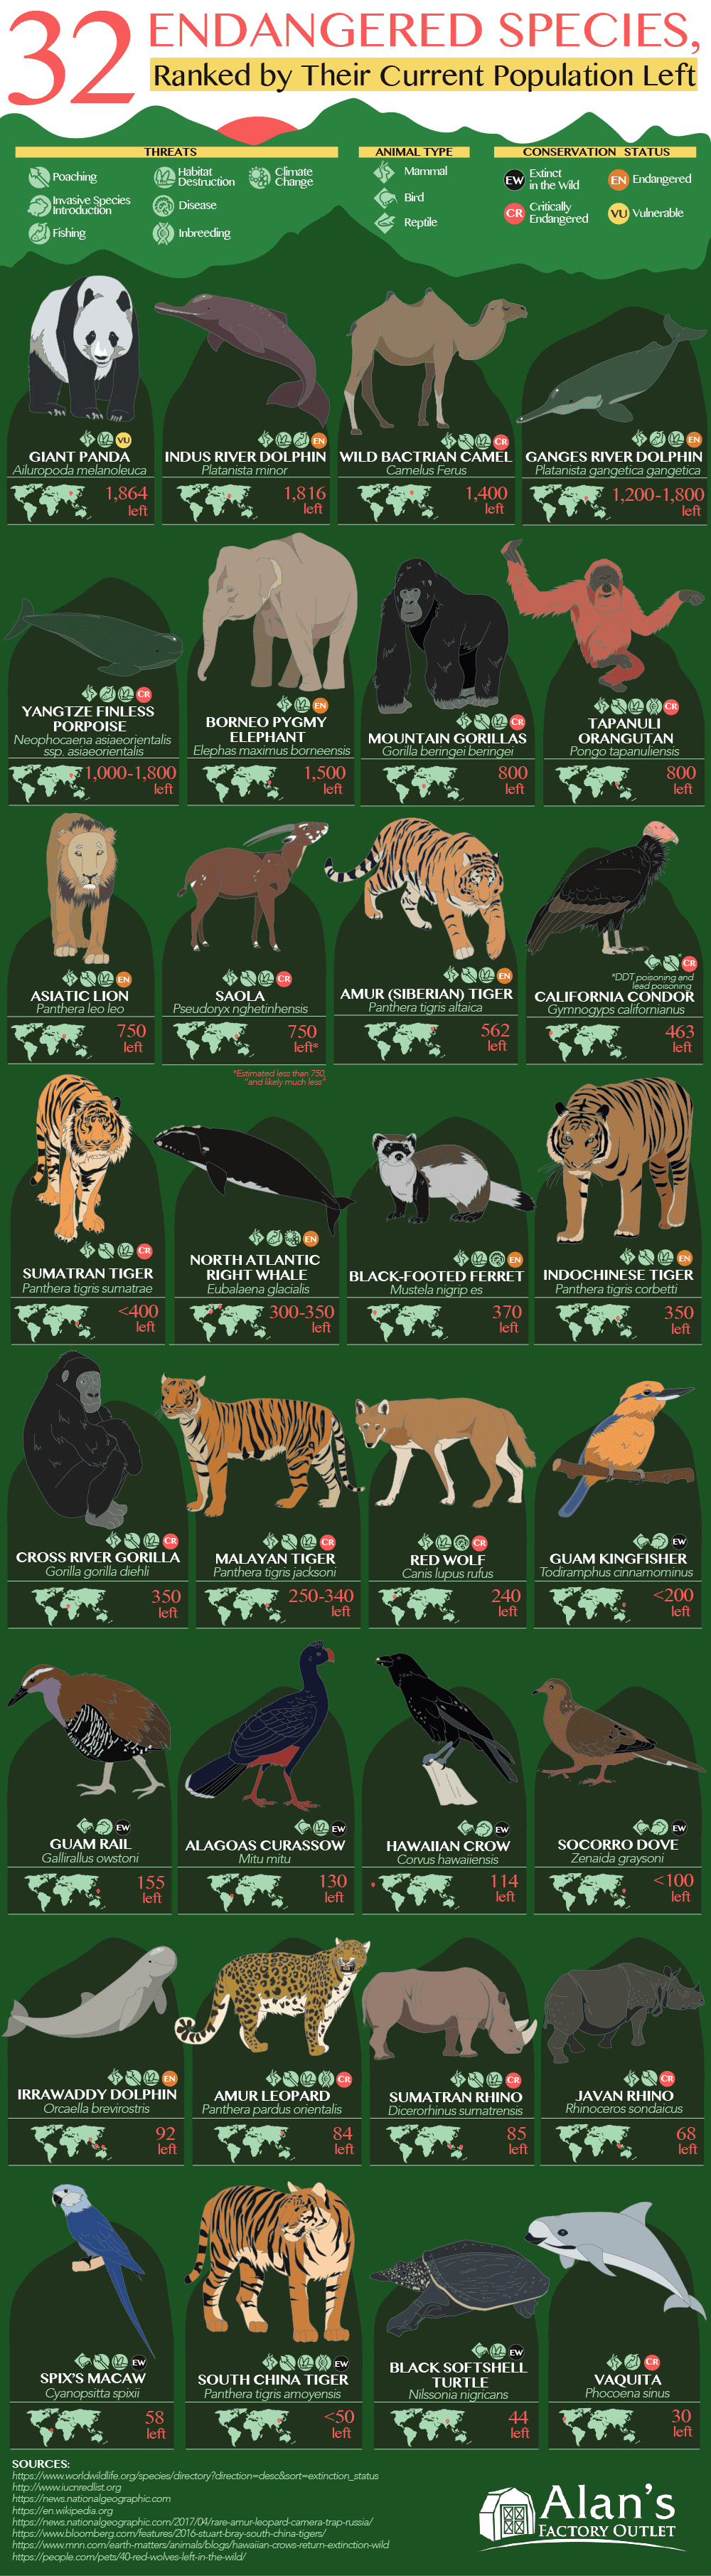 32 Endangered Species Ranked By Their Current Population Left Infographic Threats Anim In 2020 Endangered Animals Infographic Endangered Species Animal Infographic